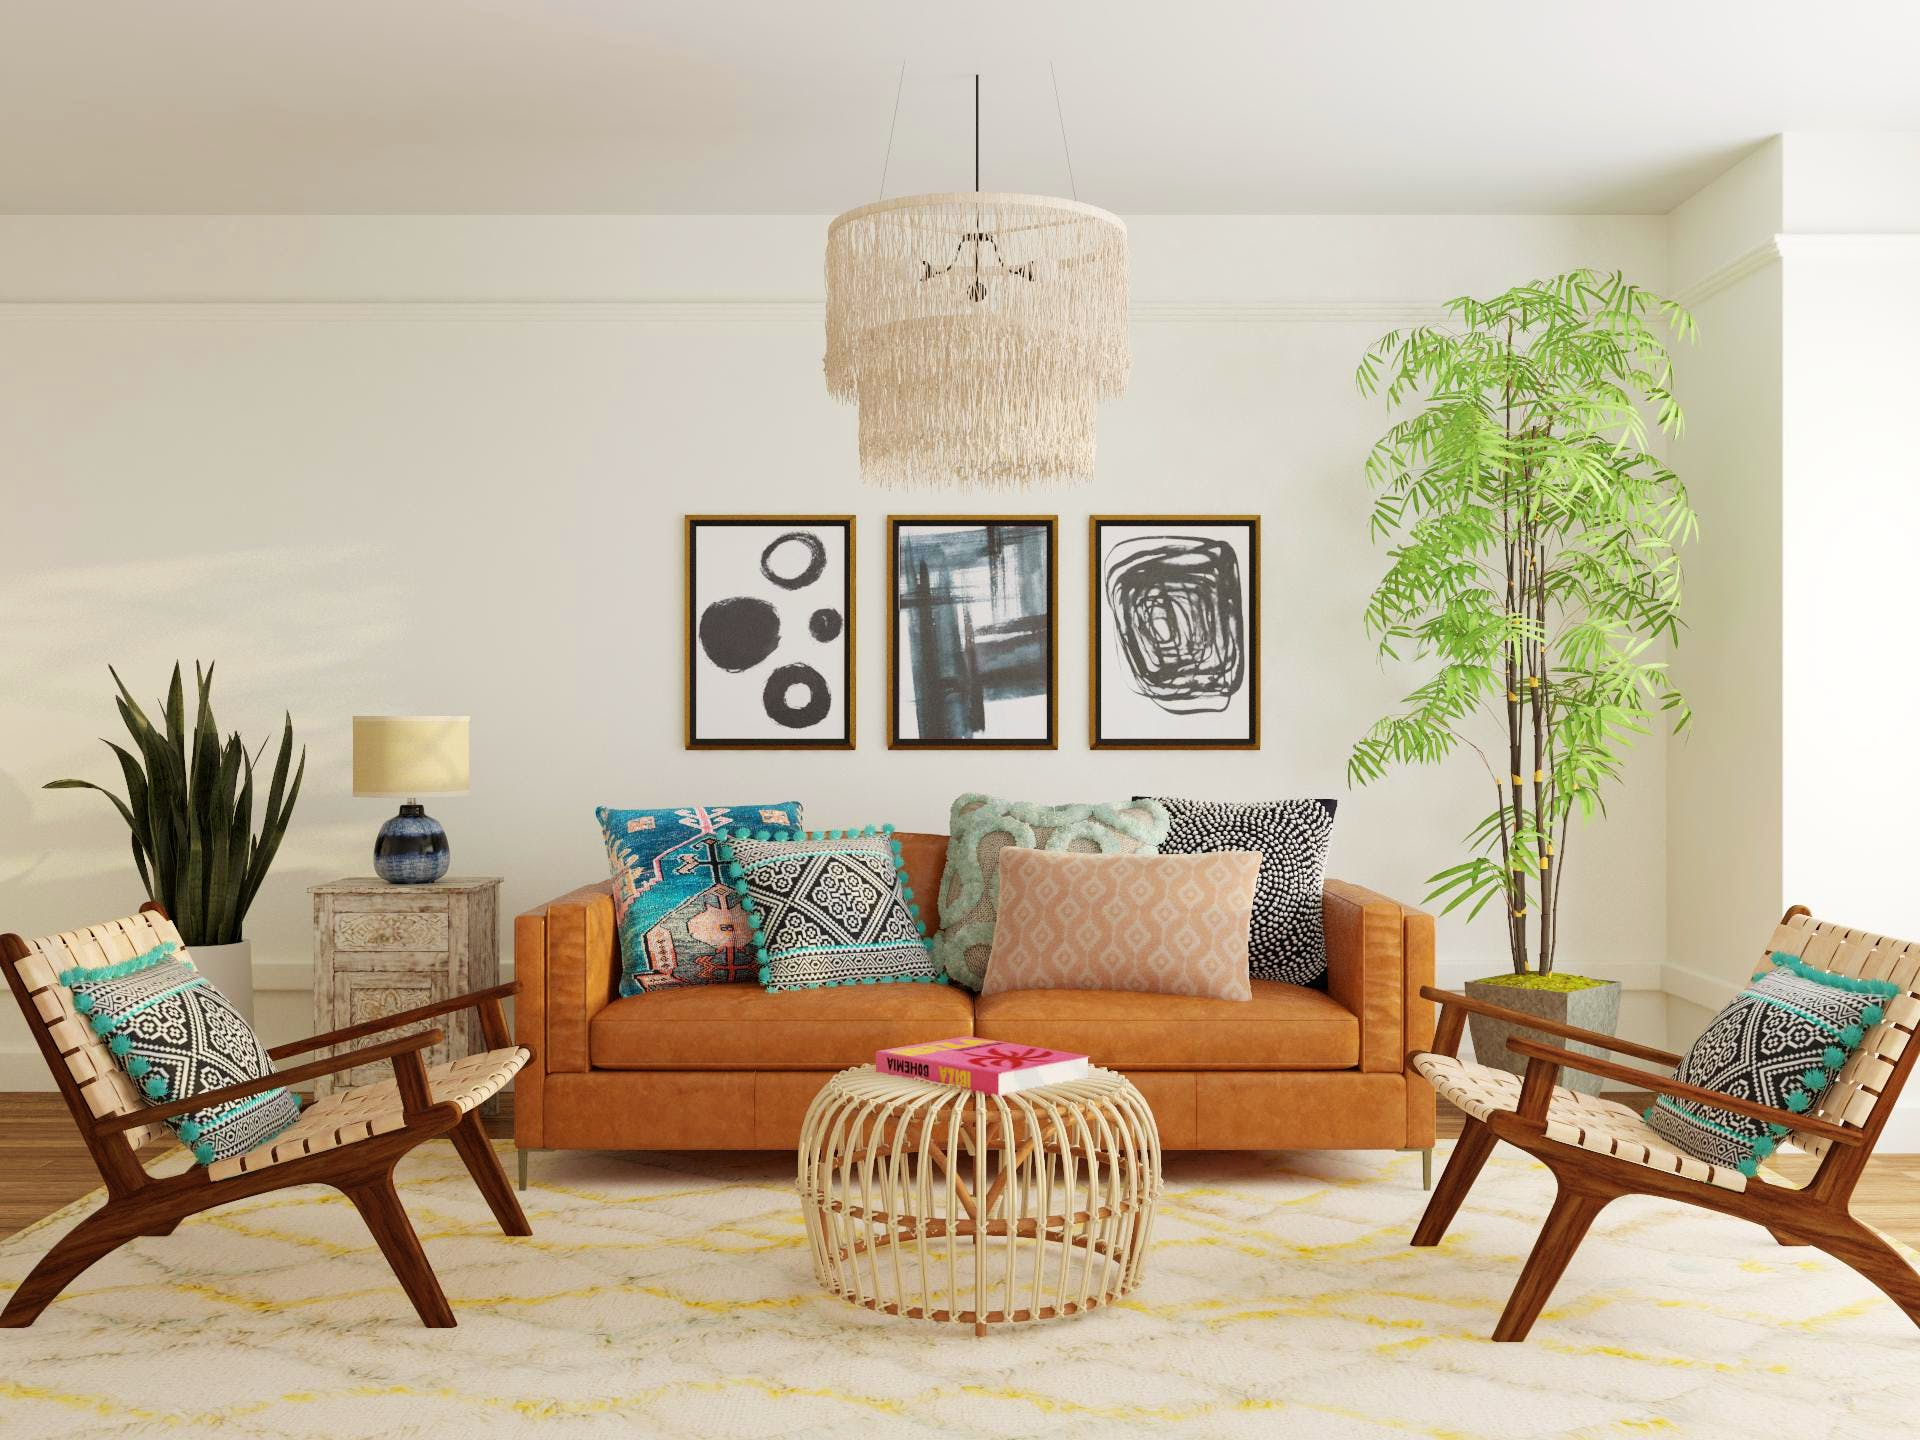 Eclectic Mid-Century-Modern  Inspired Living Room with Symmetrical Layout